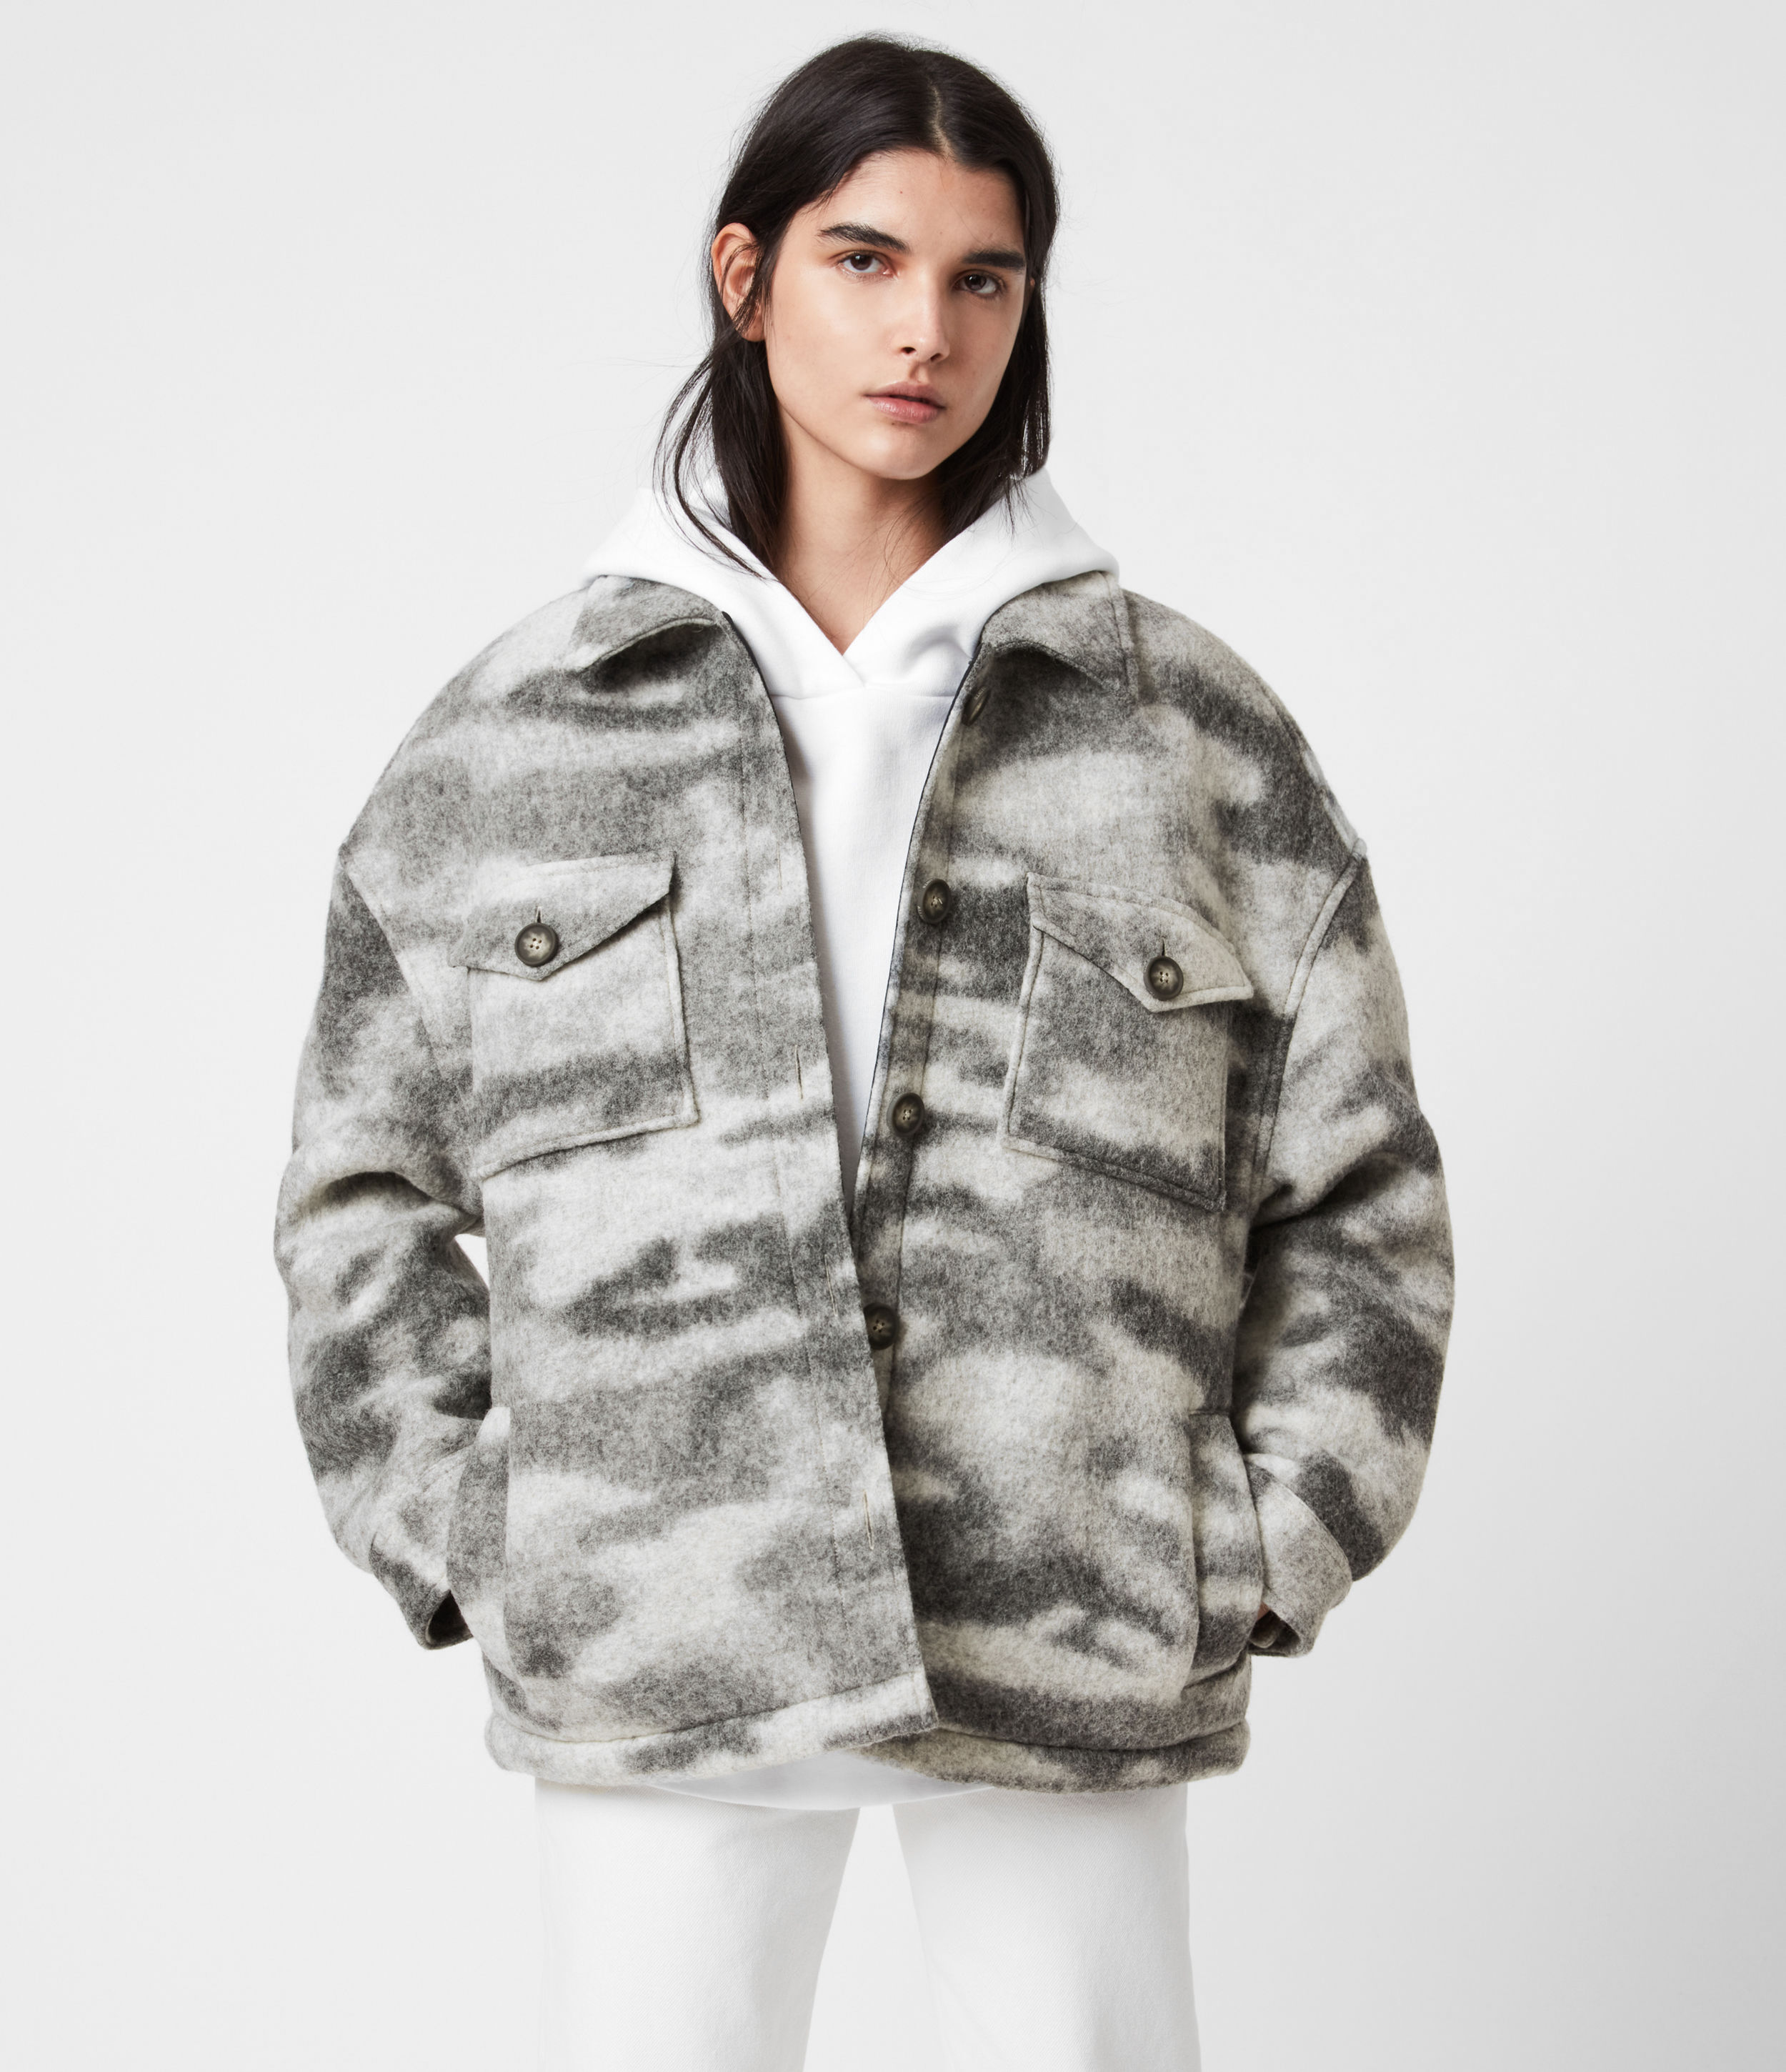 AllSaints Women's Wool Camouflage Relaxed Fit Fenix Sherpa Lined Jacket, Grey and White, Size: 2